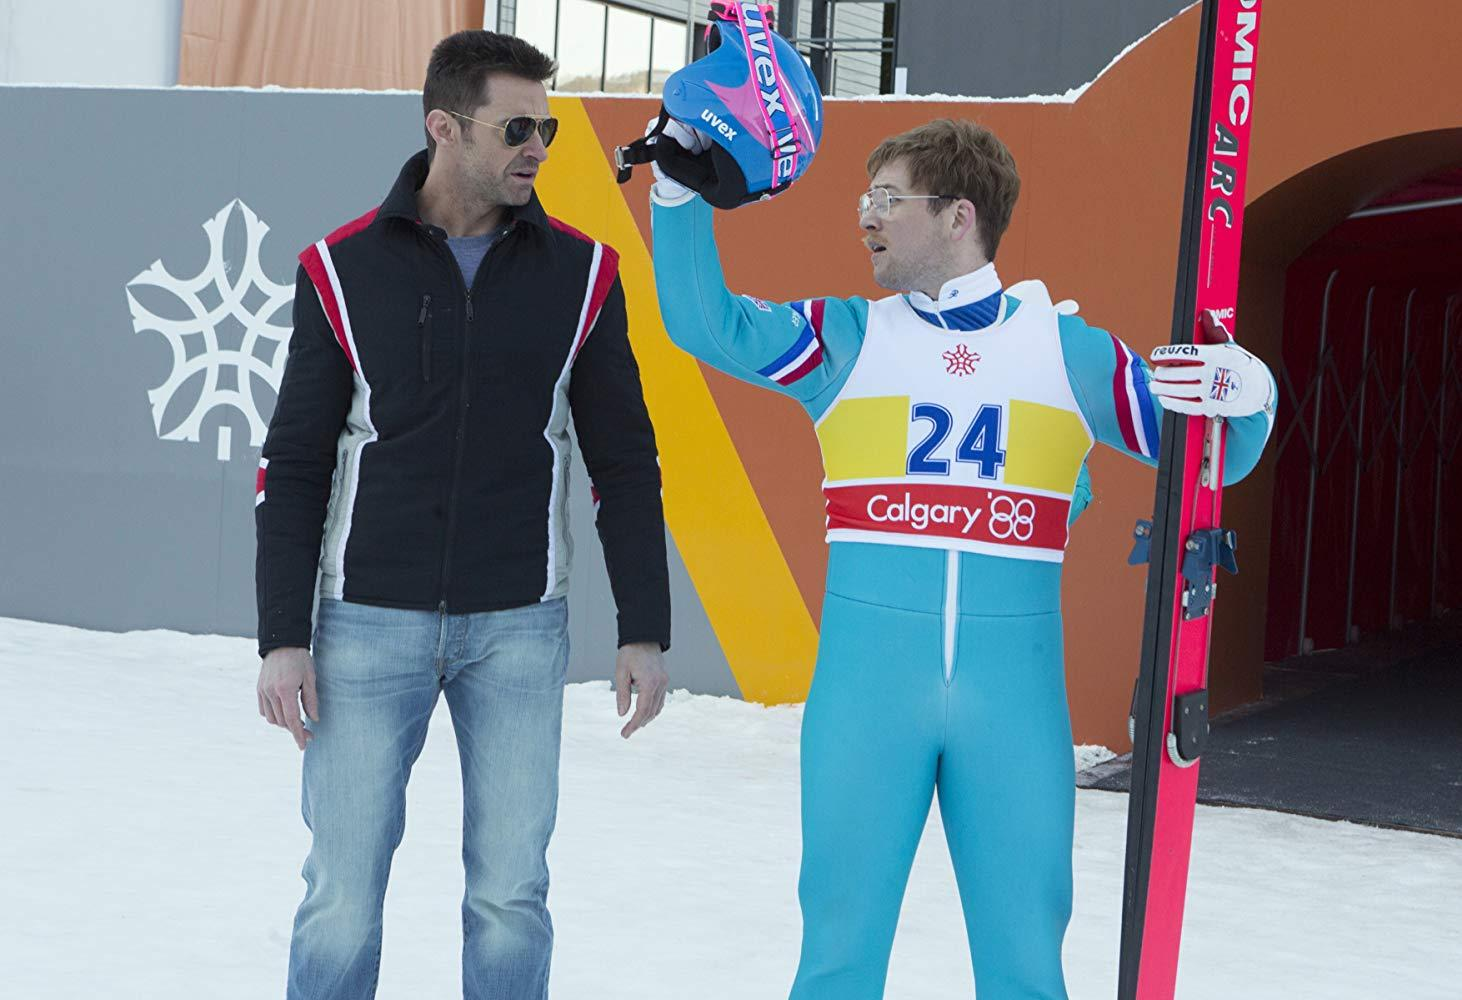 فيلم Eddie the Eagle 2016 مترجم